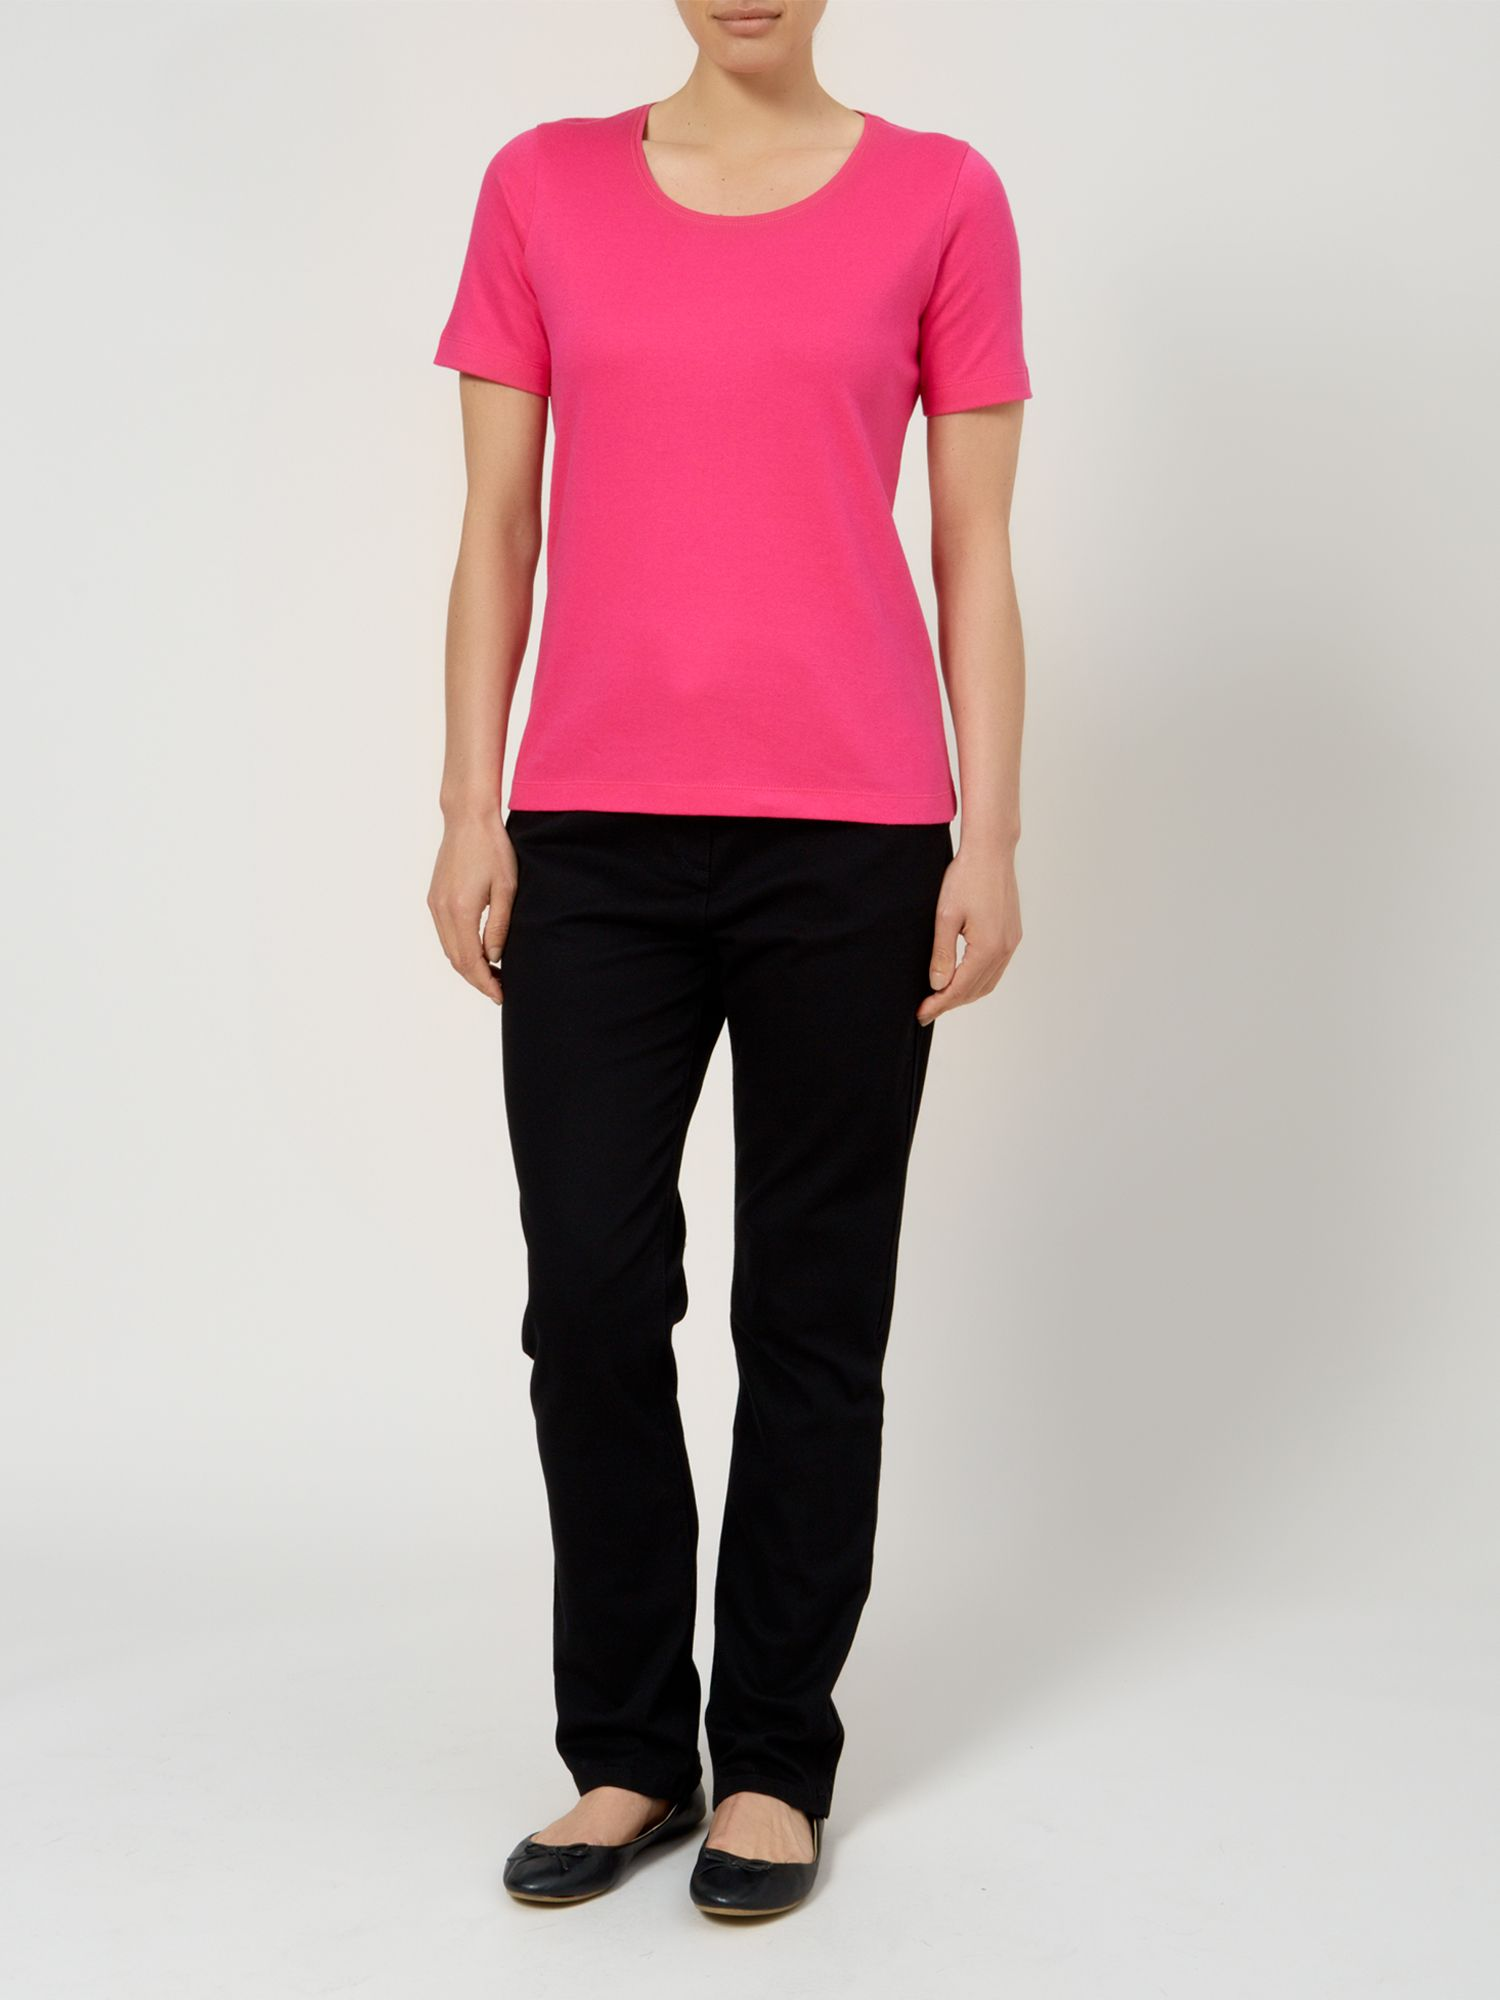 Dash Essential Pink T-shirt